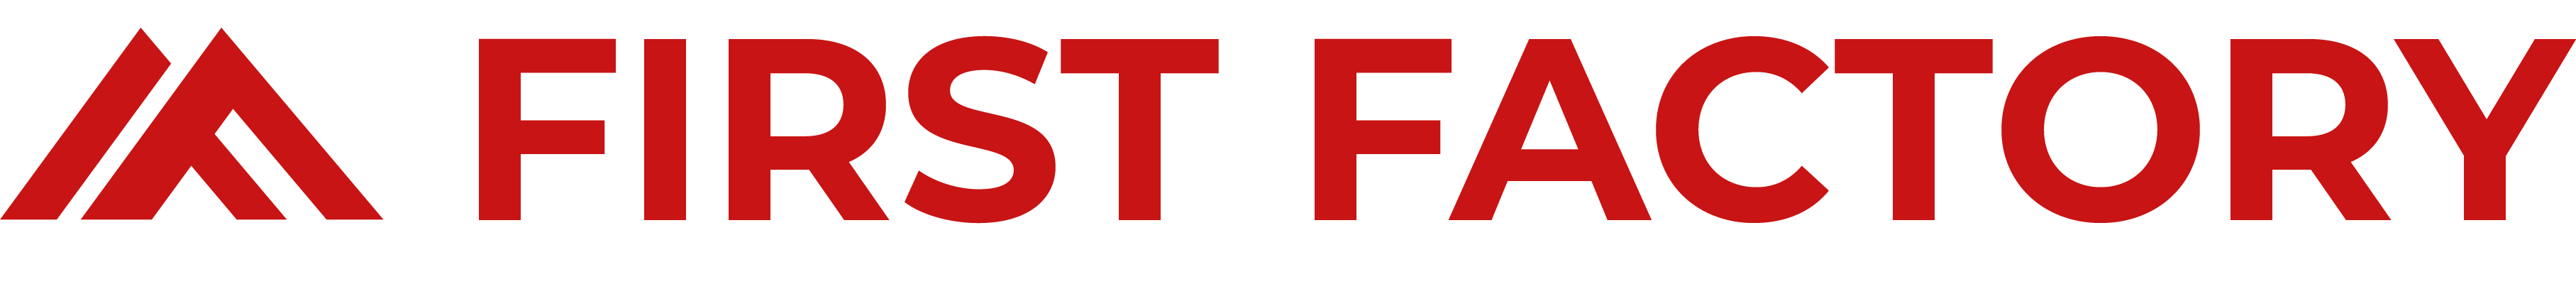 First FactoryLogo